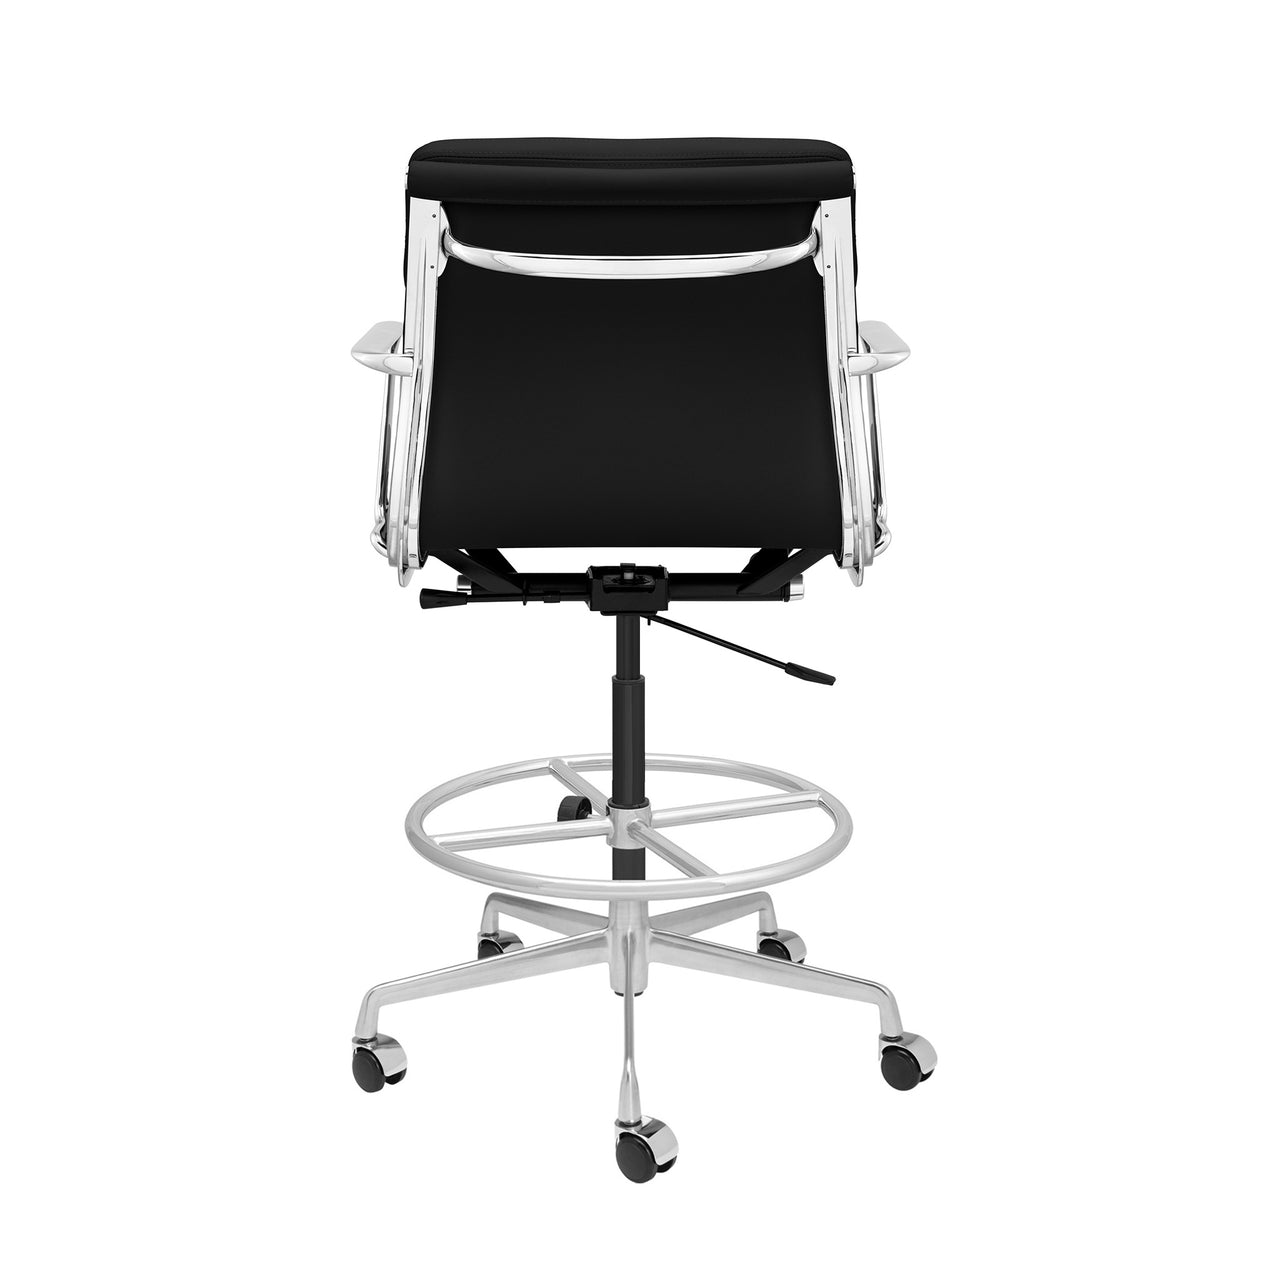 SHIPS MAY 14TH - SOHO Pro Soft Pad Drafting Chair (Black Italian Leather)